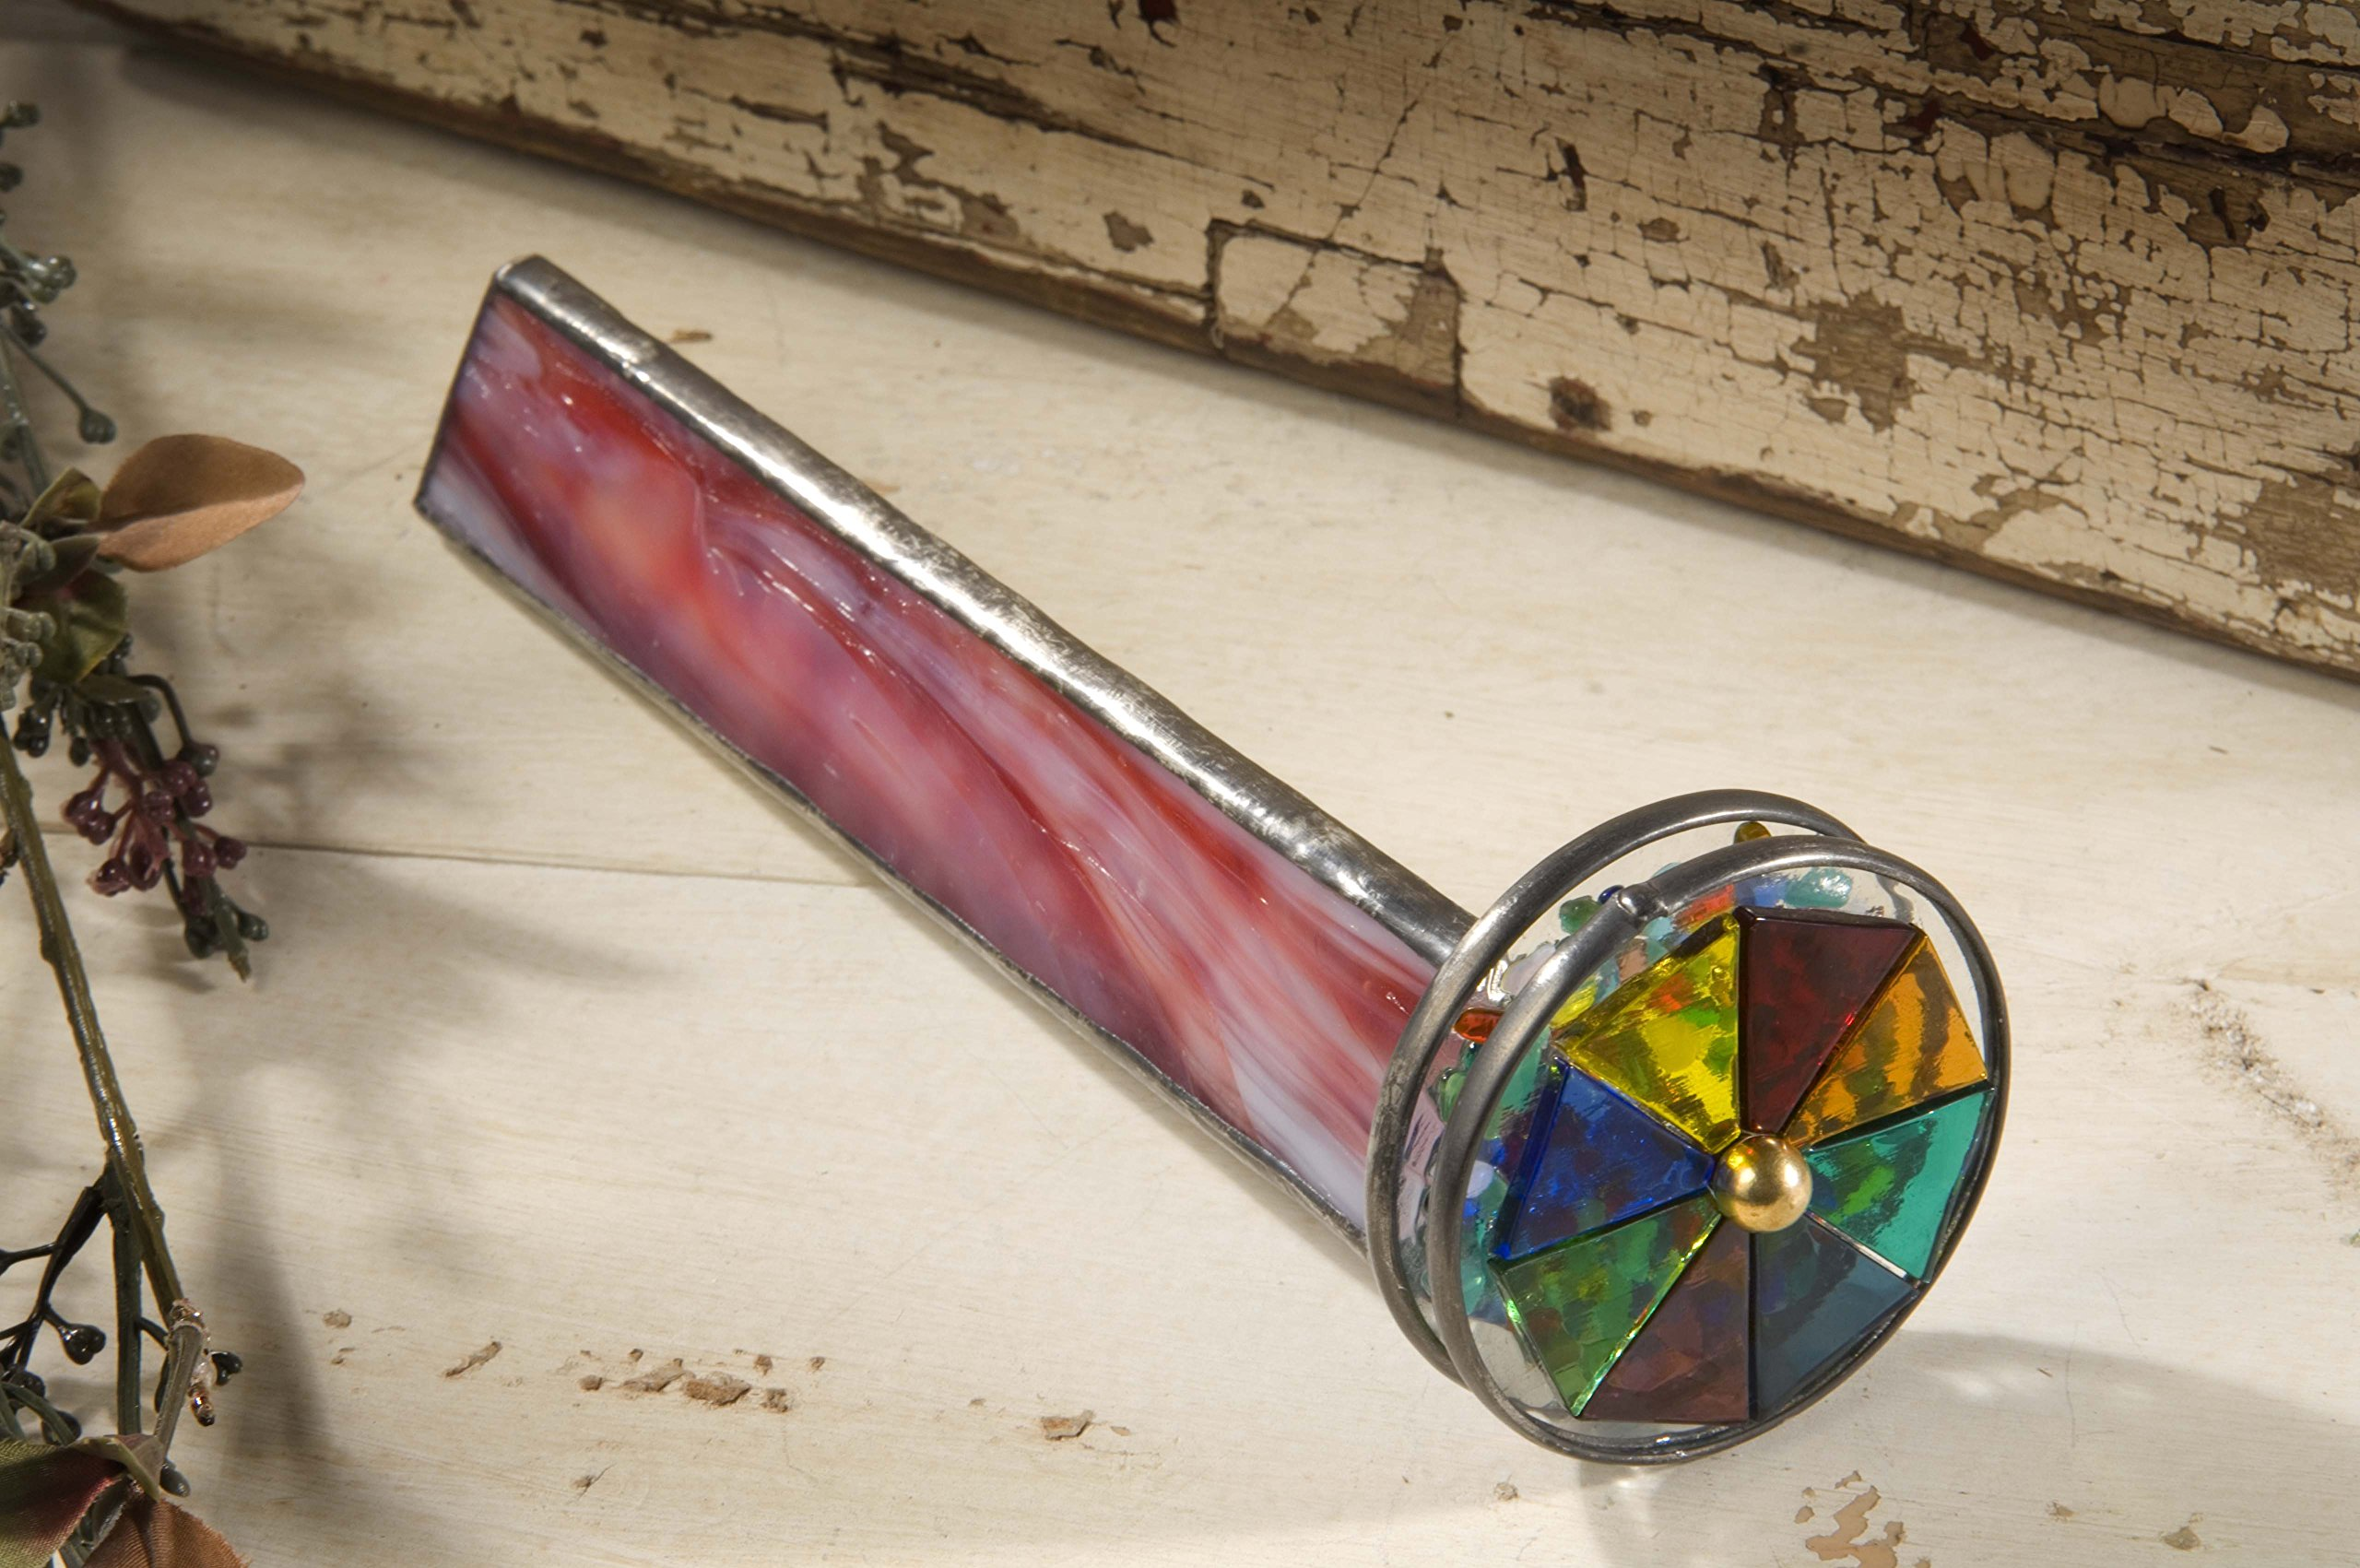 J Devlin Kal 107 Red Stained Glass Kaleidoscope Two Wheel Home Office Desk Decor Gift for Dad by J Devlin Glass Art (Image #3)